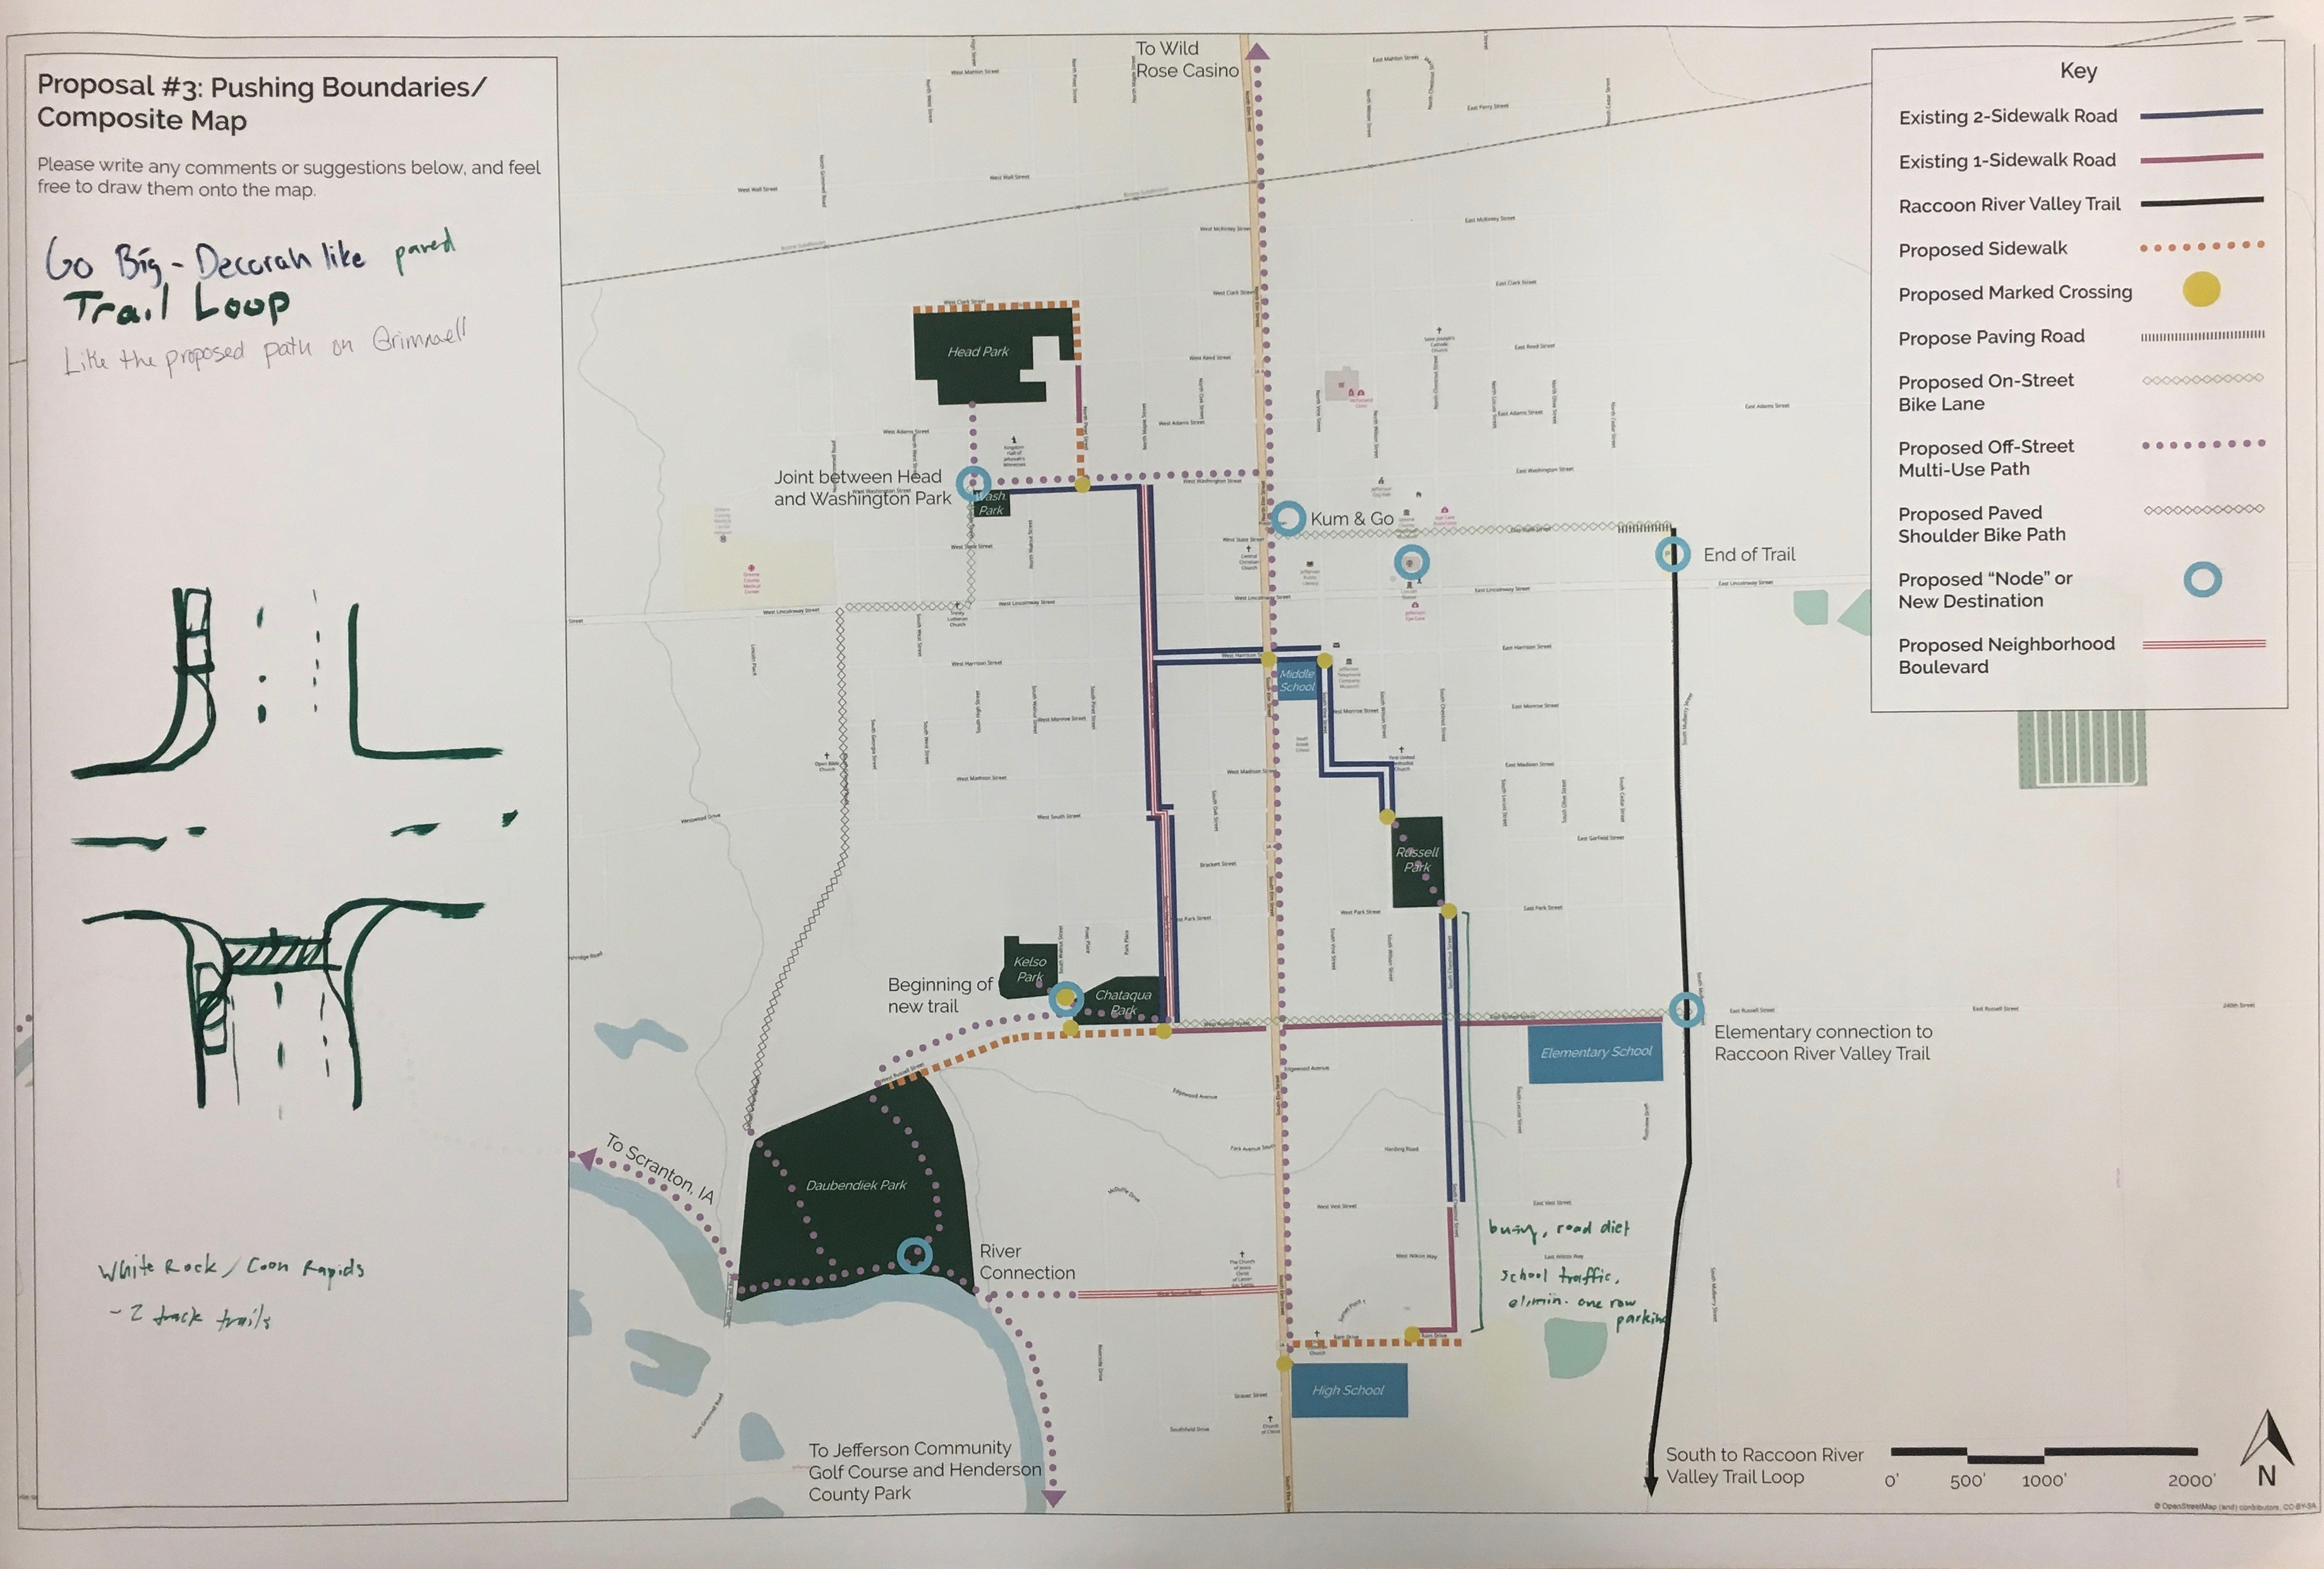 A map of proposed transportation enhancements used to collect community comments.